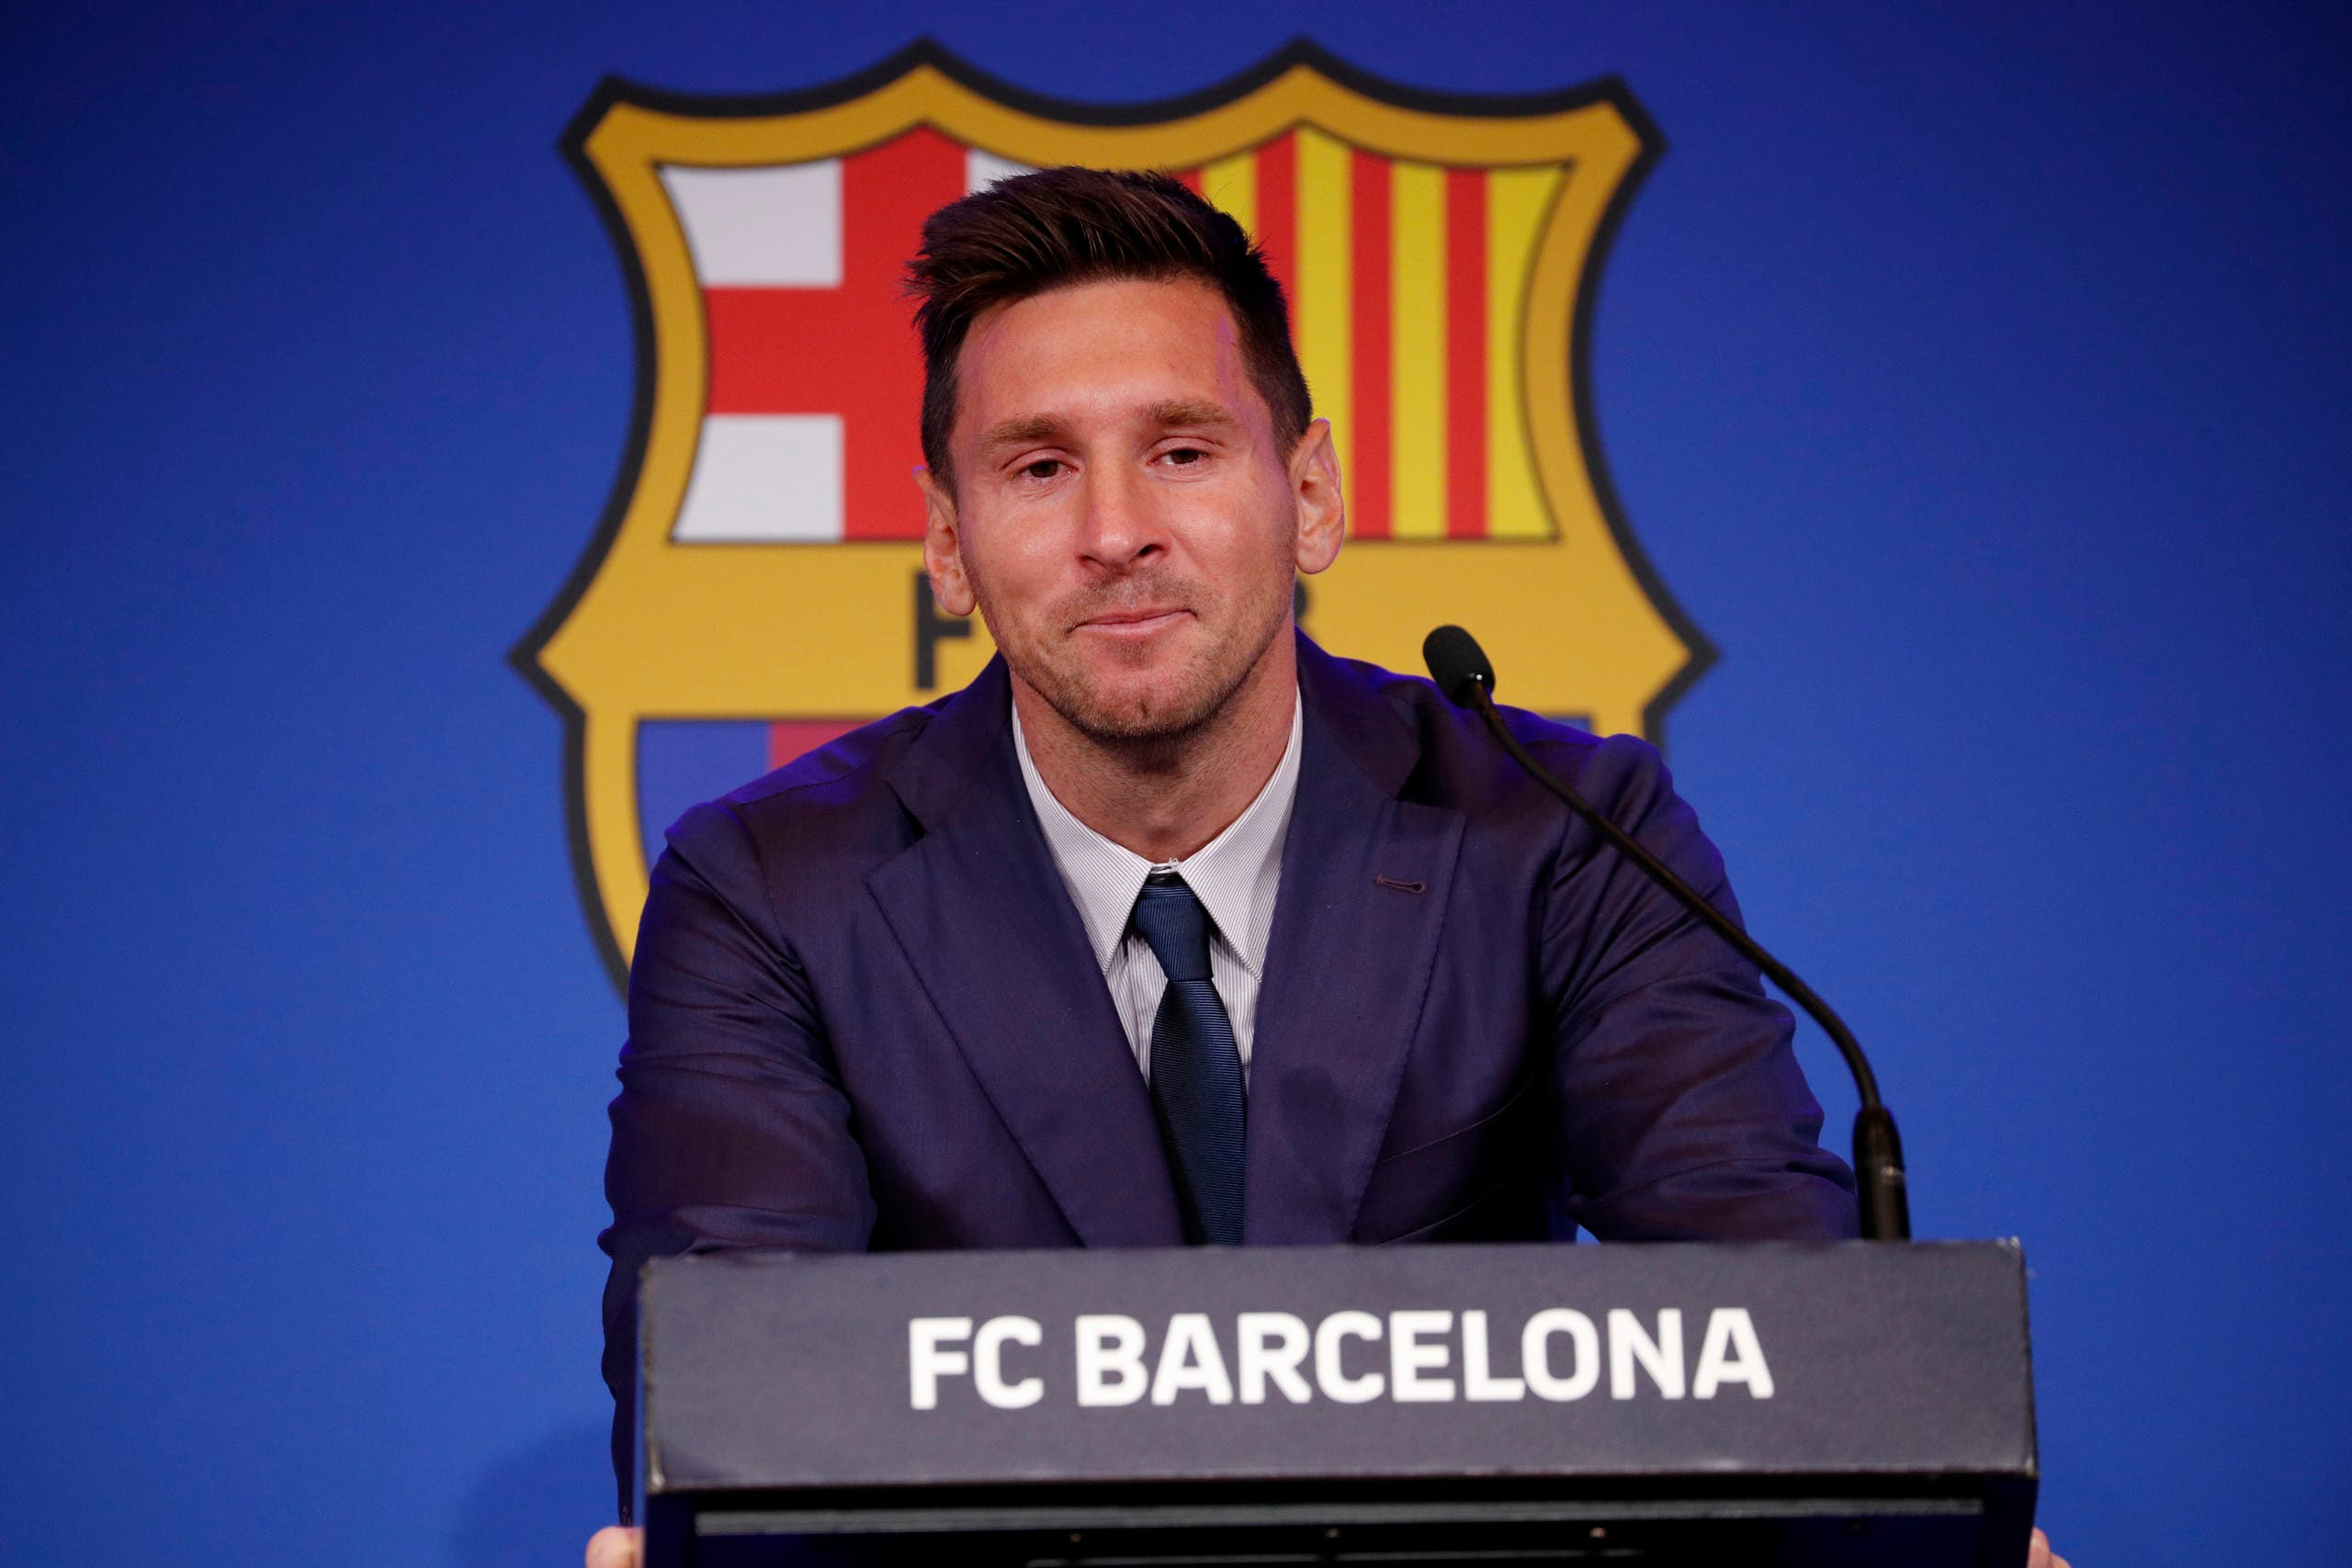 Soccer Football - Lionel Messi holds an FC Barcelona press conference - 1899 Auditorium, Camp Nou, Barcelona, Spain - August 8, 2021 Lionel Messi during the press conference (Reuters)